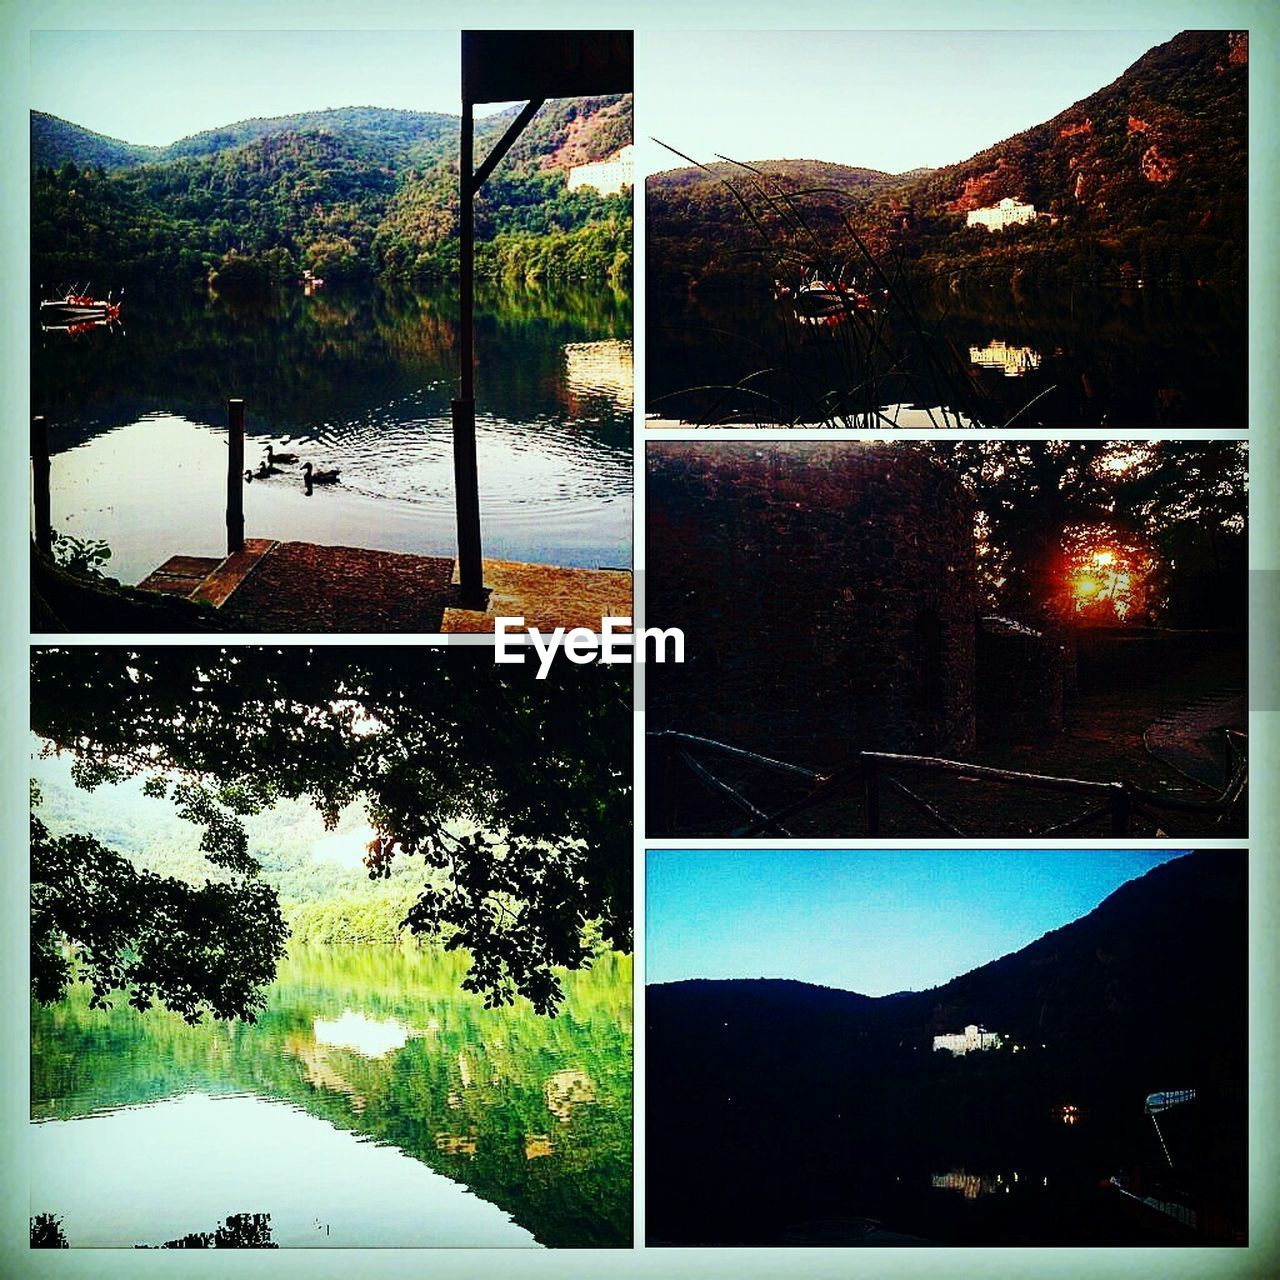 water, collage, tree, no people, nature, outdoors, lake, mountain, sky, beauty in nature, swimming pool, day, multiple image, close-up